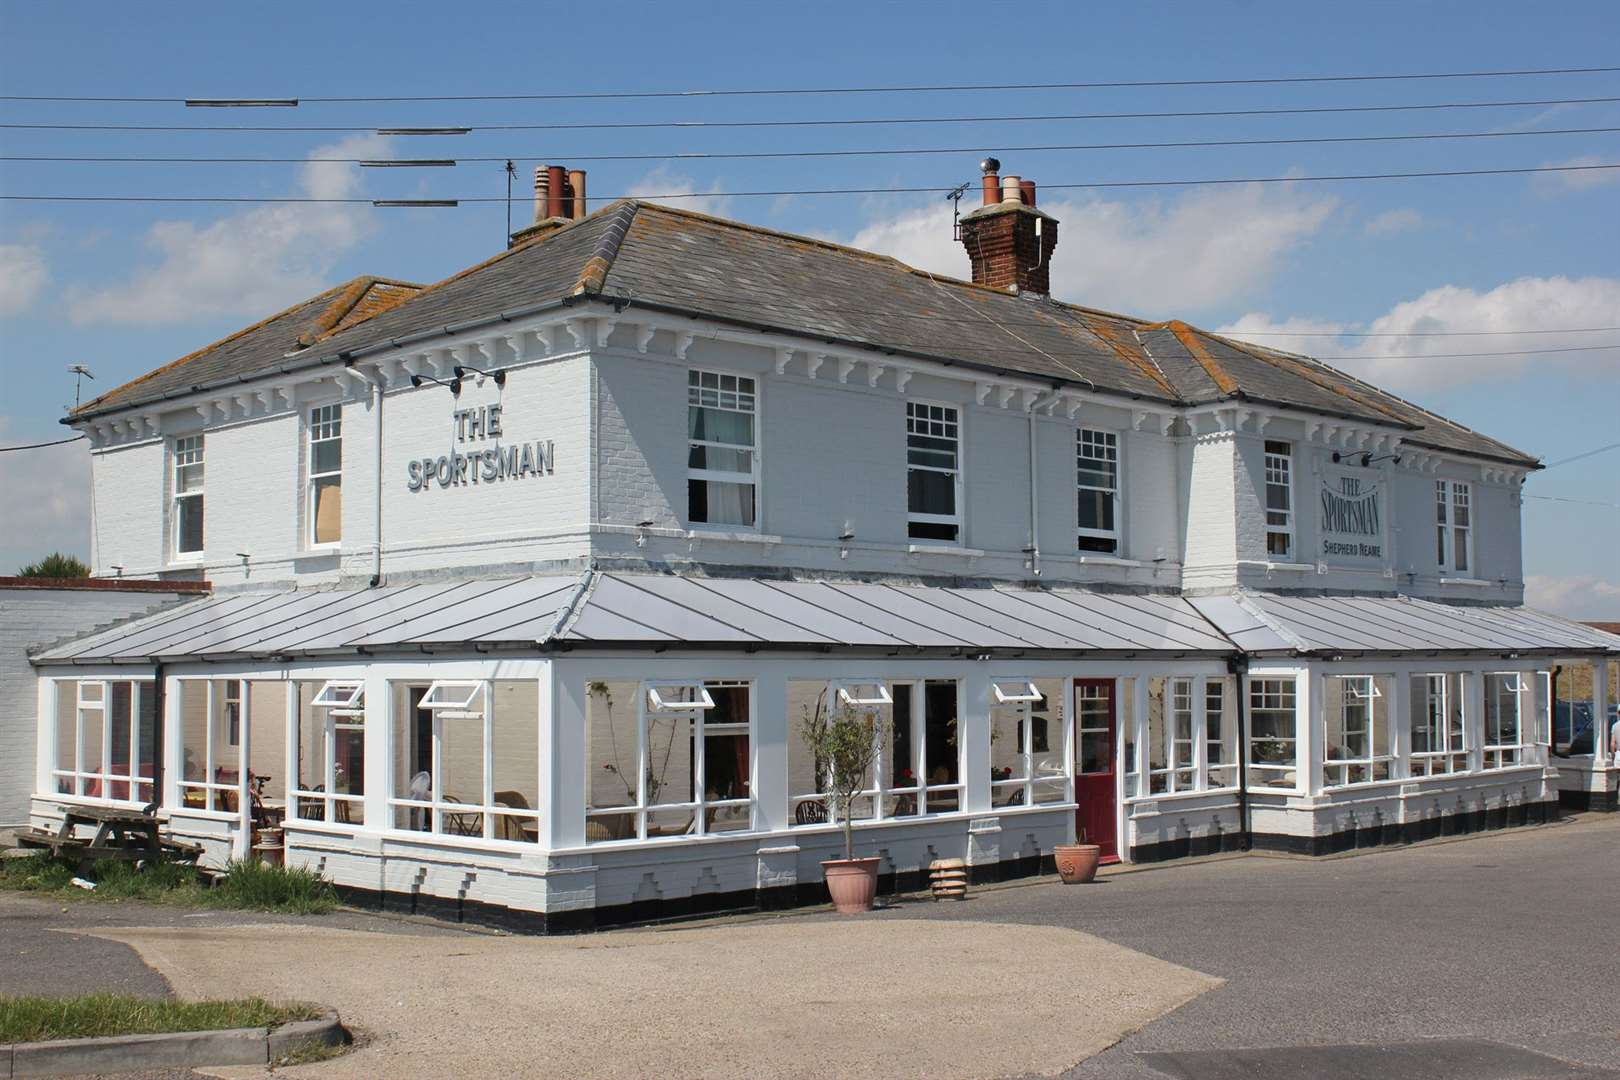 The Sportsman pub at Seasalter (27822272)